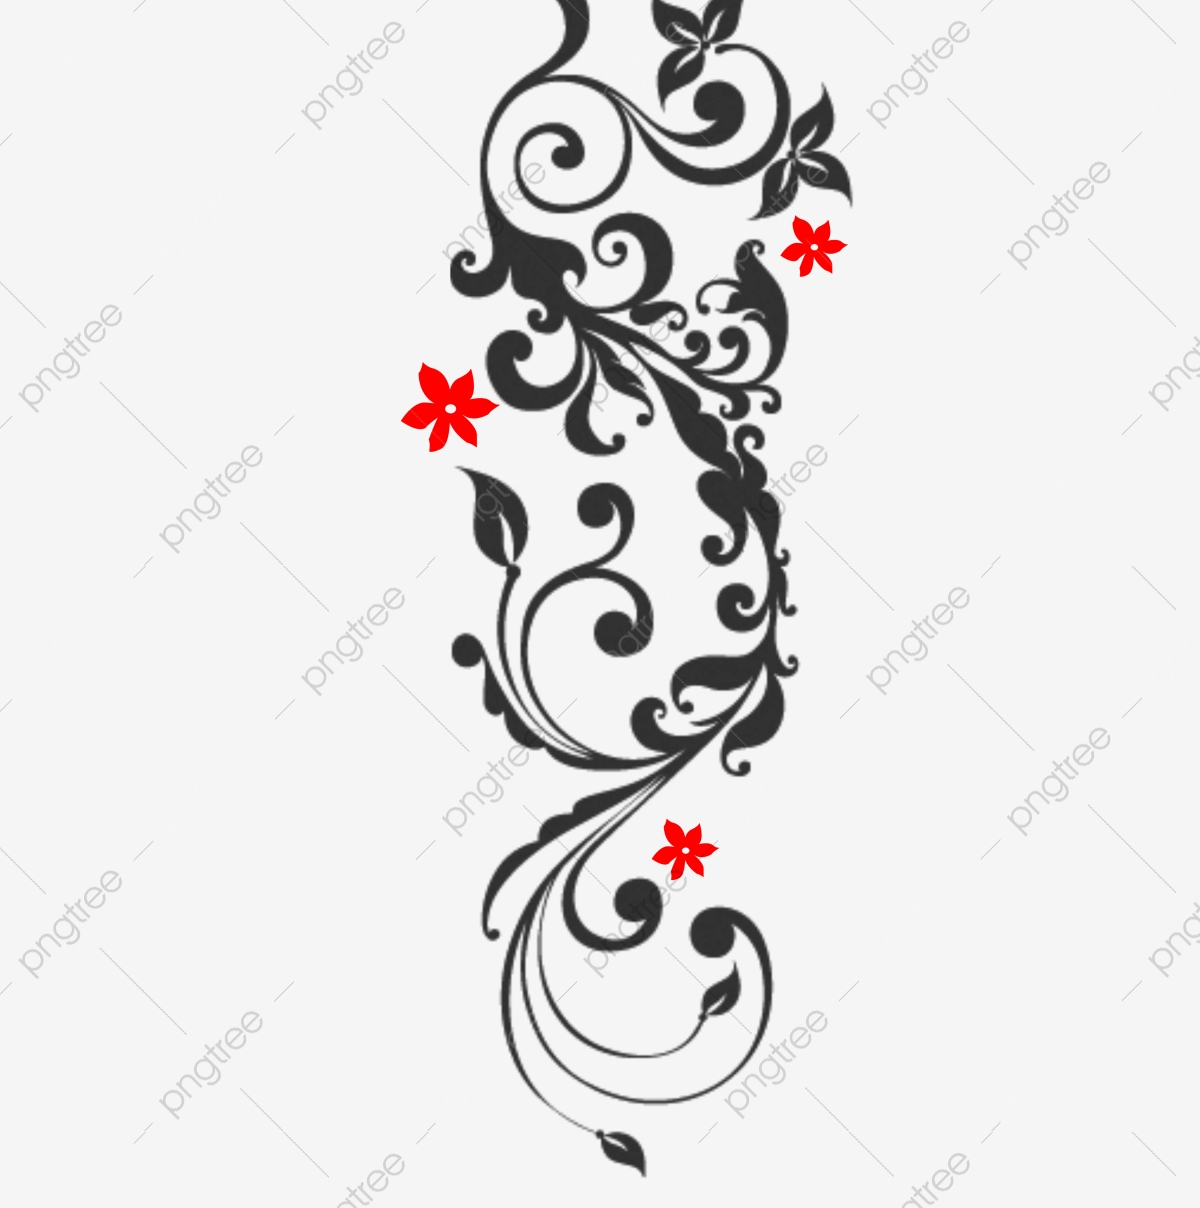 batik hitam putih png vector psd and clipart with transparent background for free download pngtree https pngtree com freepng bunga hitam kembang merah 5325689 html